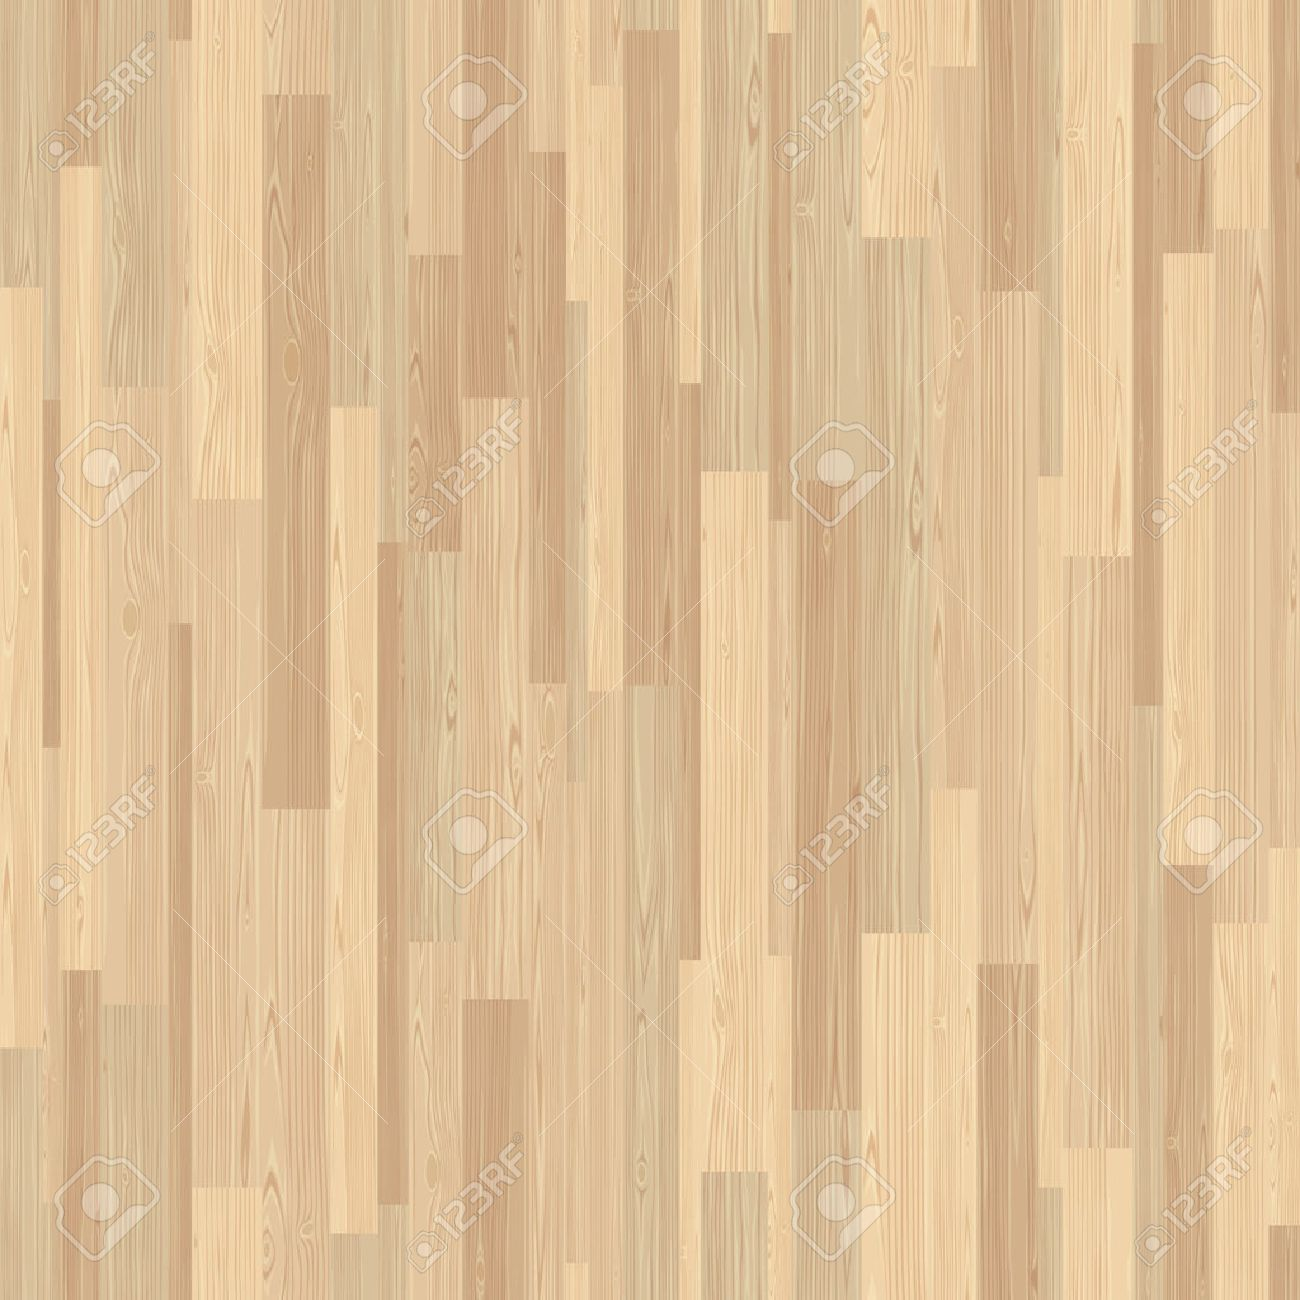 Light parquet seamless wooden floor stripe mosaic tile. Editable pattern in swatches. - 53965037